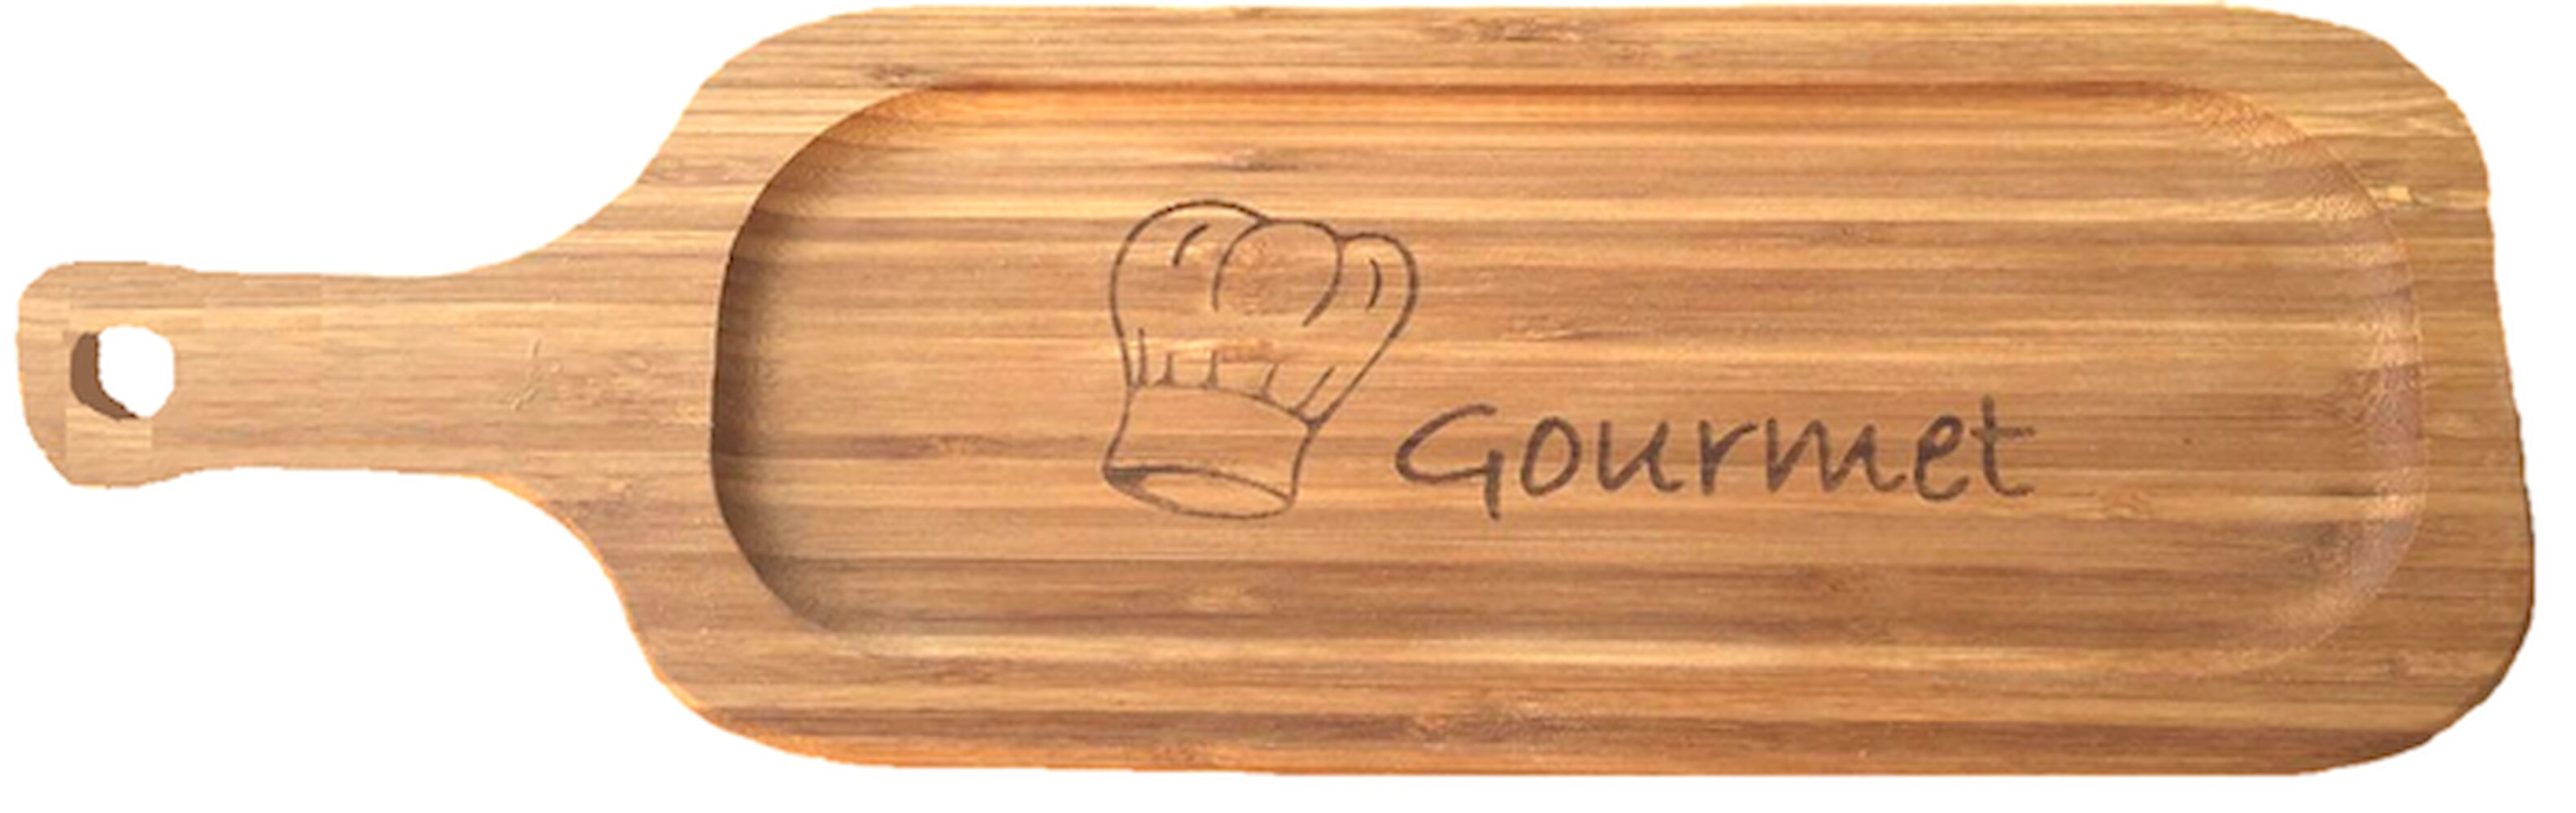 Mr Mjs Cutting Boards You Ll Love In 2021 Wayfair